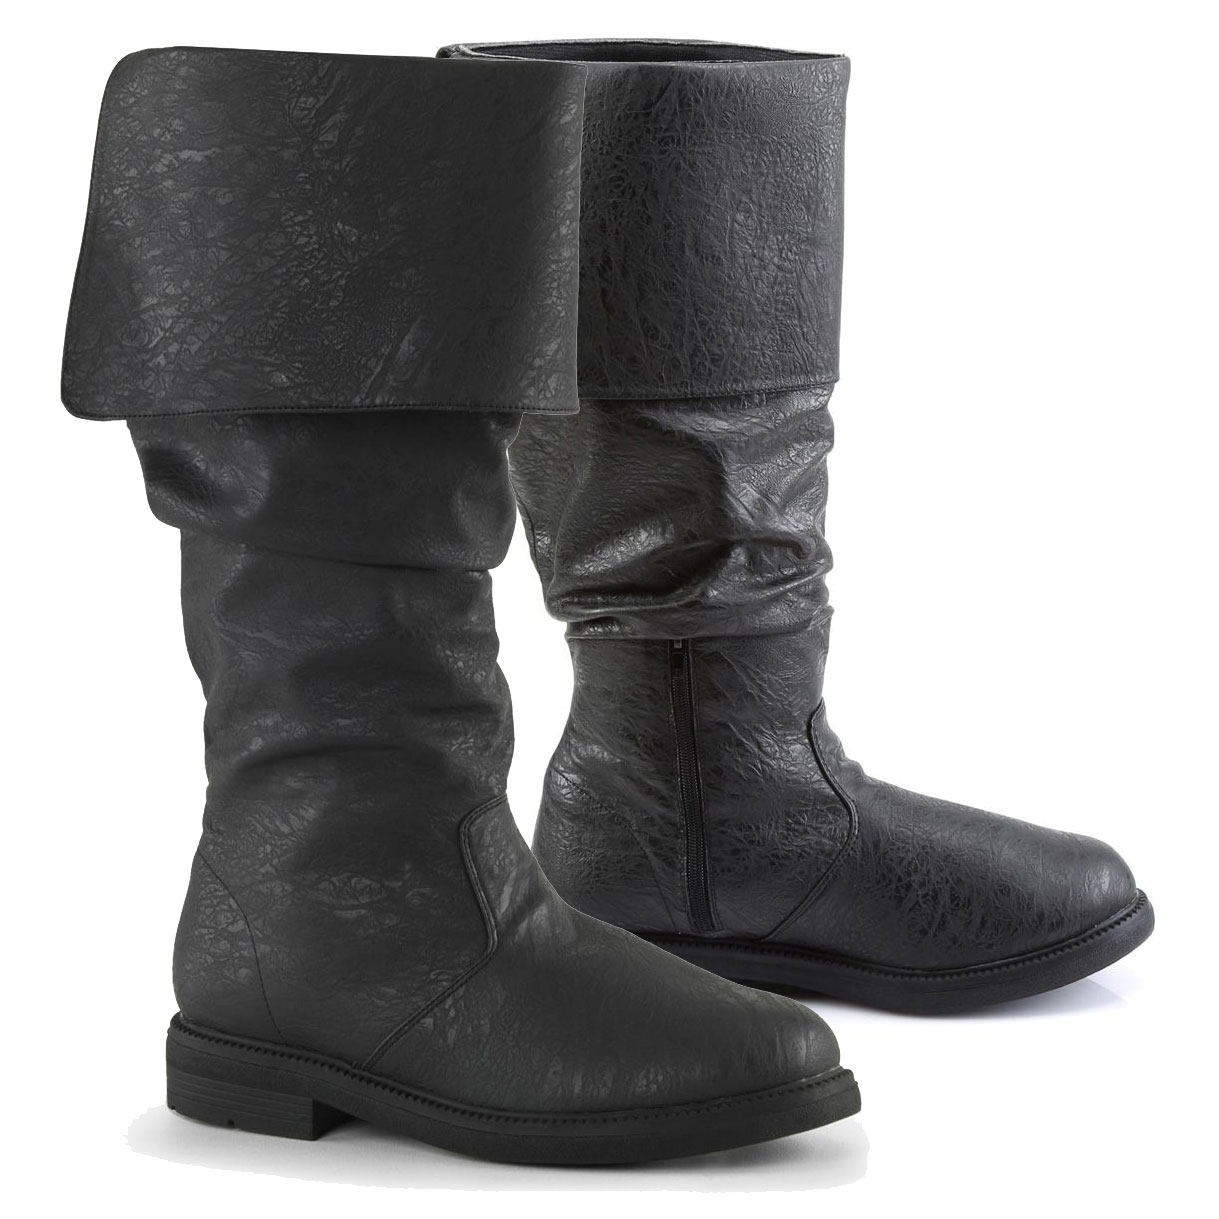 medieval style boots